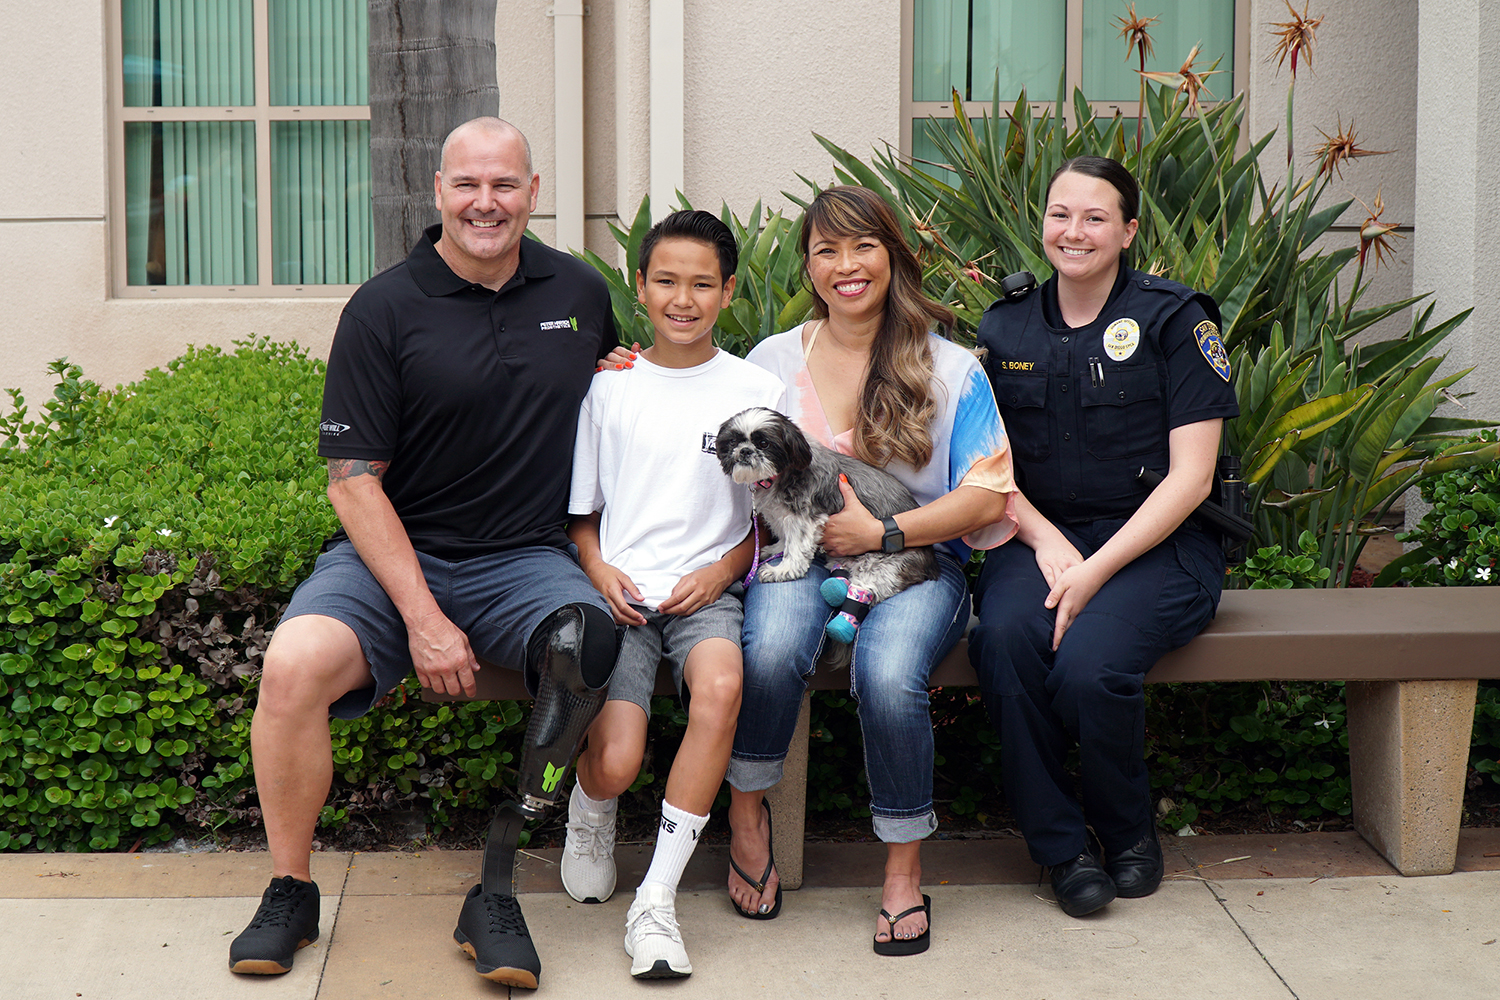 Amputee Dog Adopted By Detective with Prosthetic